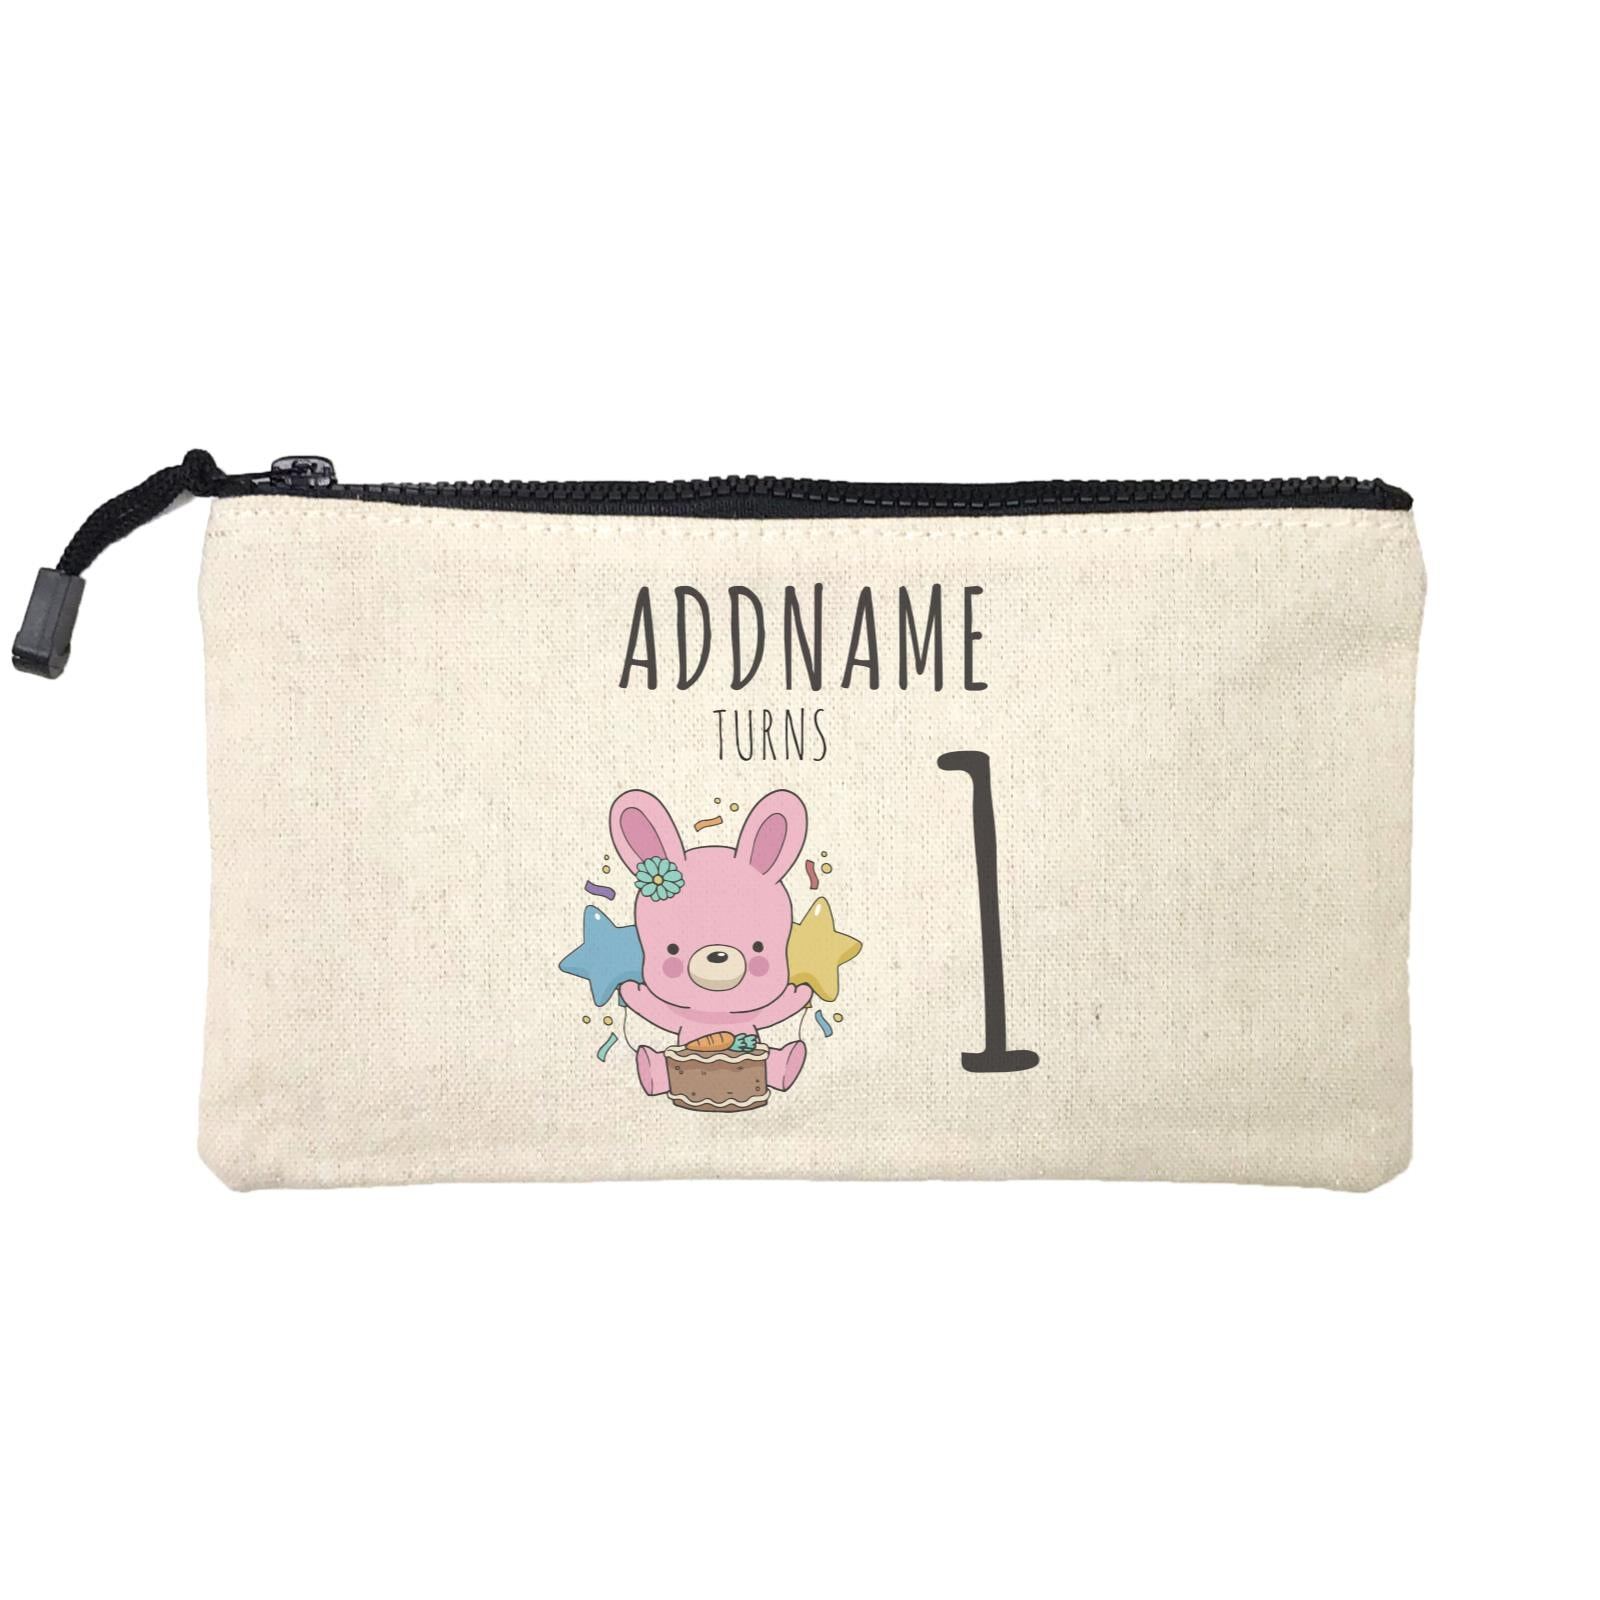 Birthday Sketch Animals Rabbit With Carrot Cake Addname Turns 1 Mini Accessories Stationery Pouch